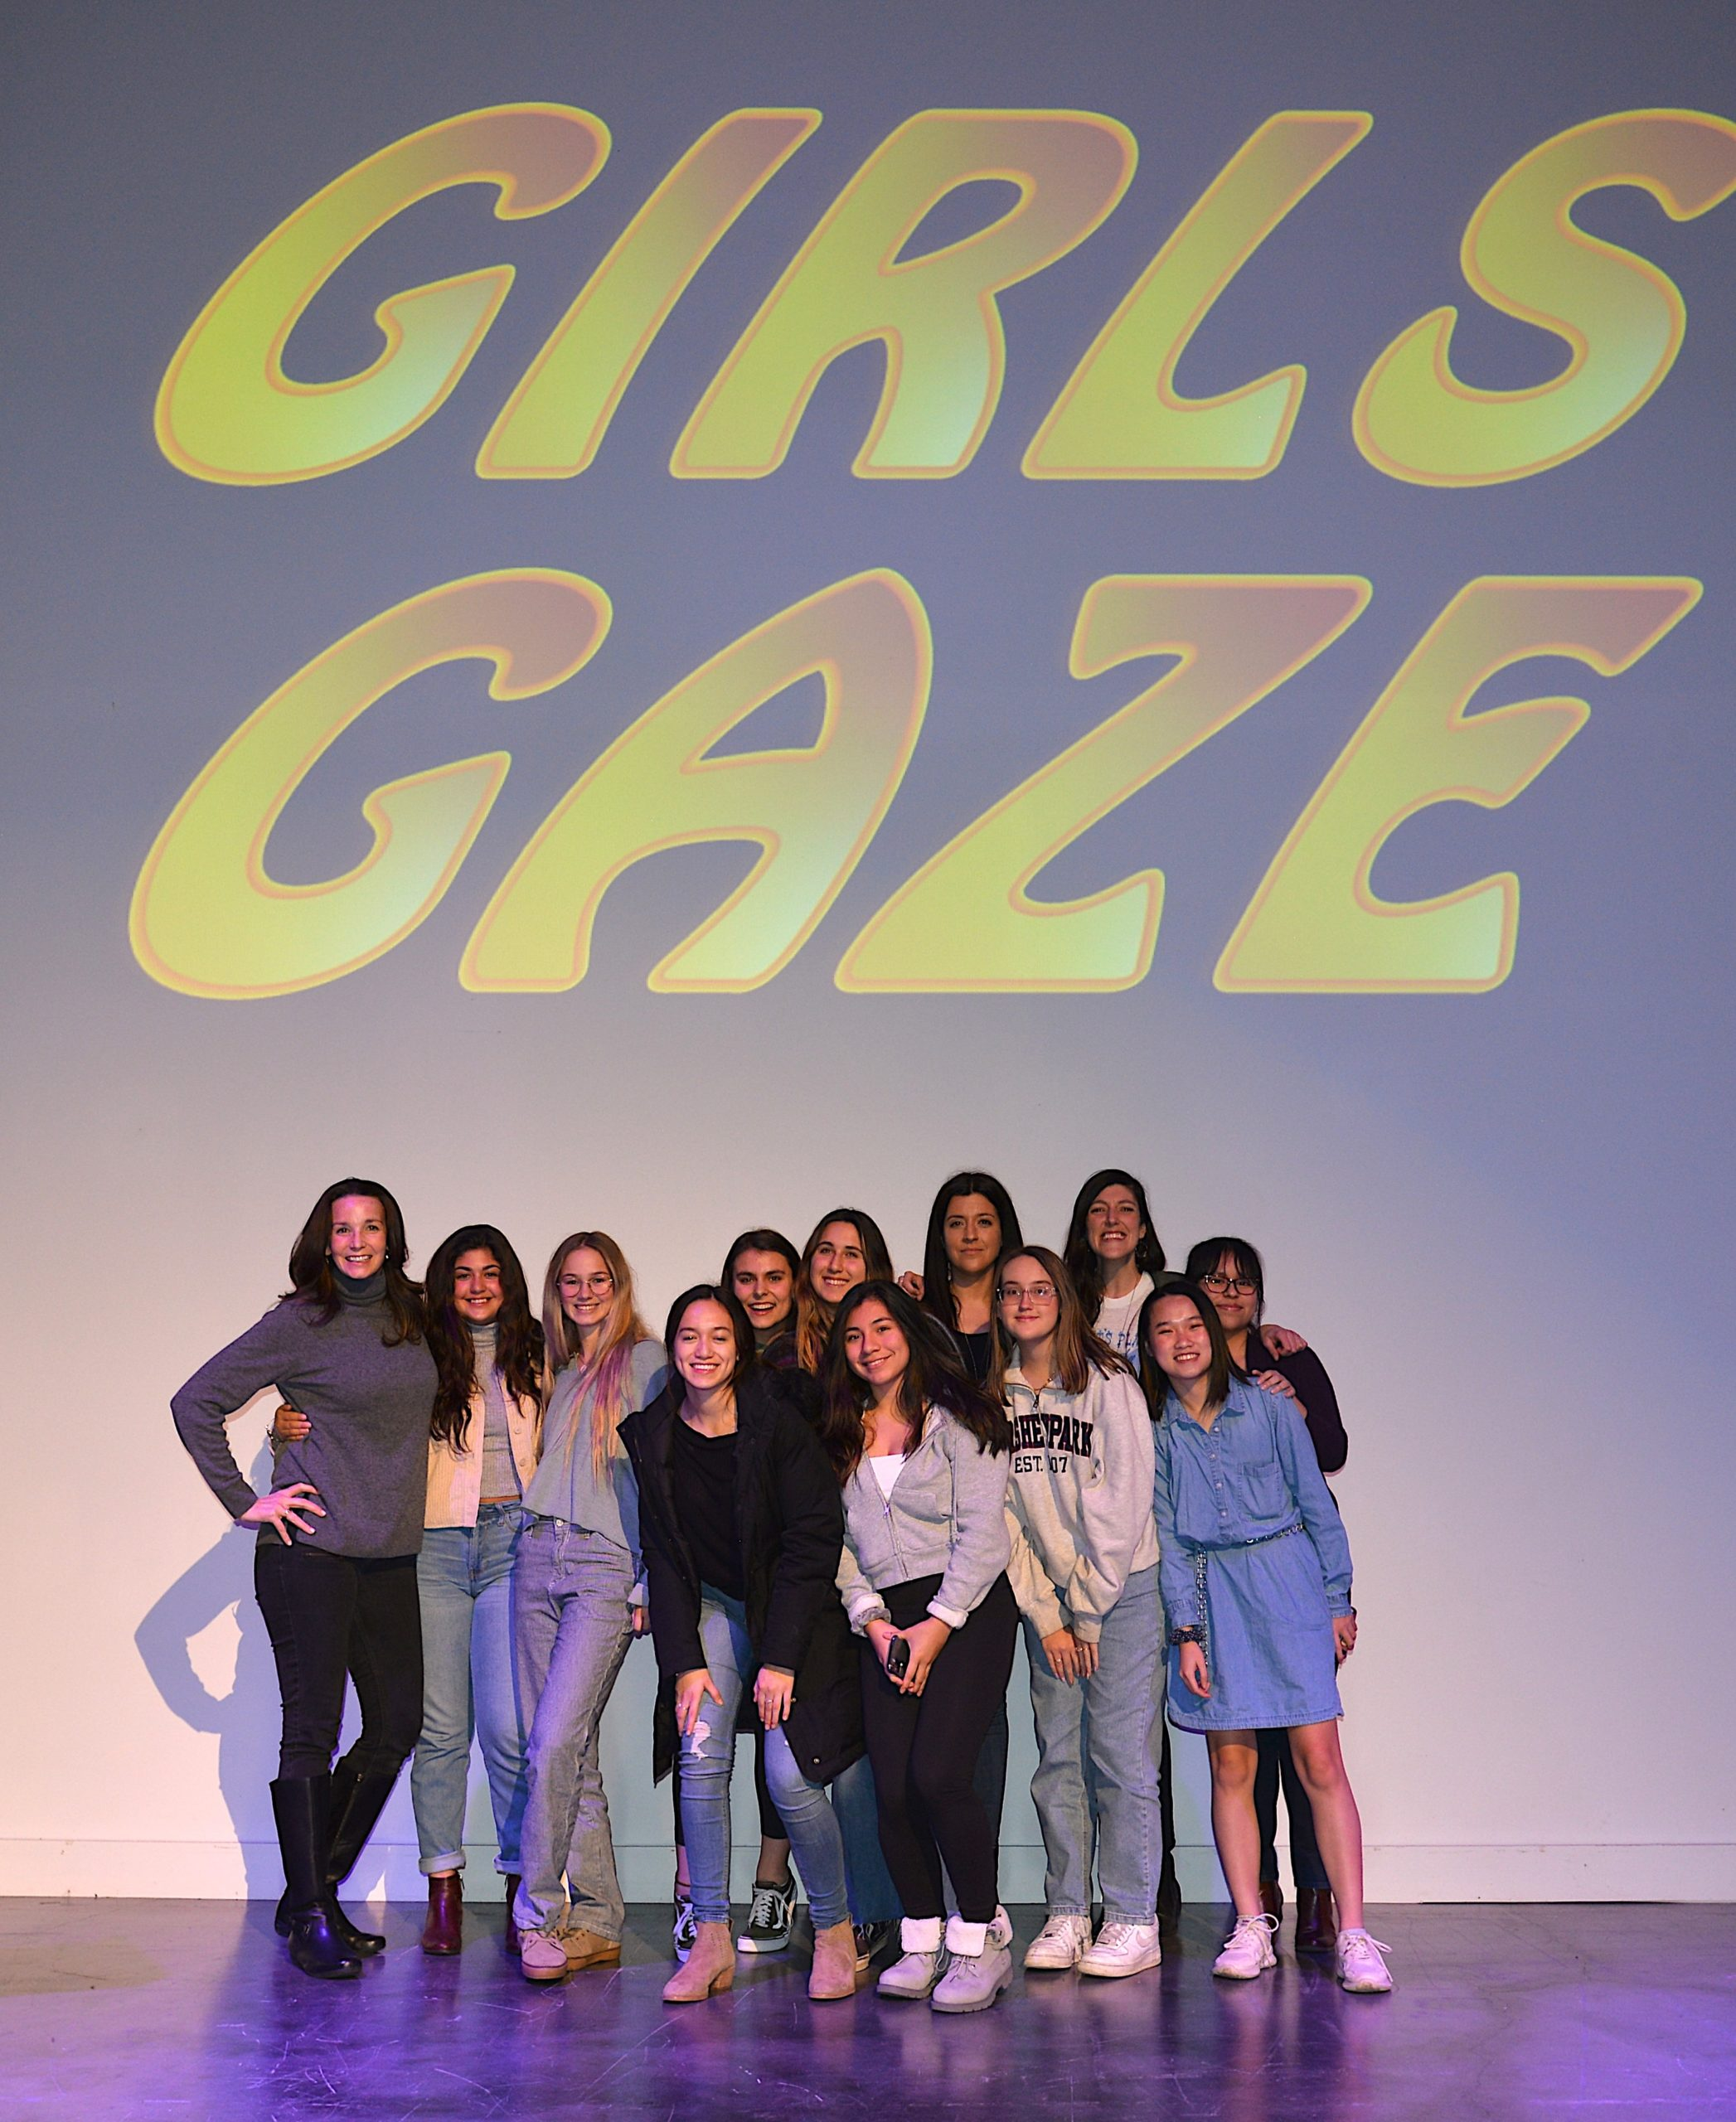 Girls Gaze, a screening of short films created by East Hampton High School girls who participated in a pilot program with the Neo-Political Cowgirls, took place at LTV Media Center on Thursday. The event was also supported by the Hamptons Film Festival, East Hampton Kiwanis and East Hampton Lions. KYRIL BROMLEY